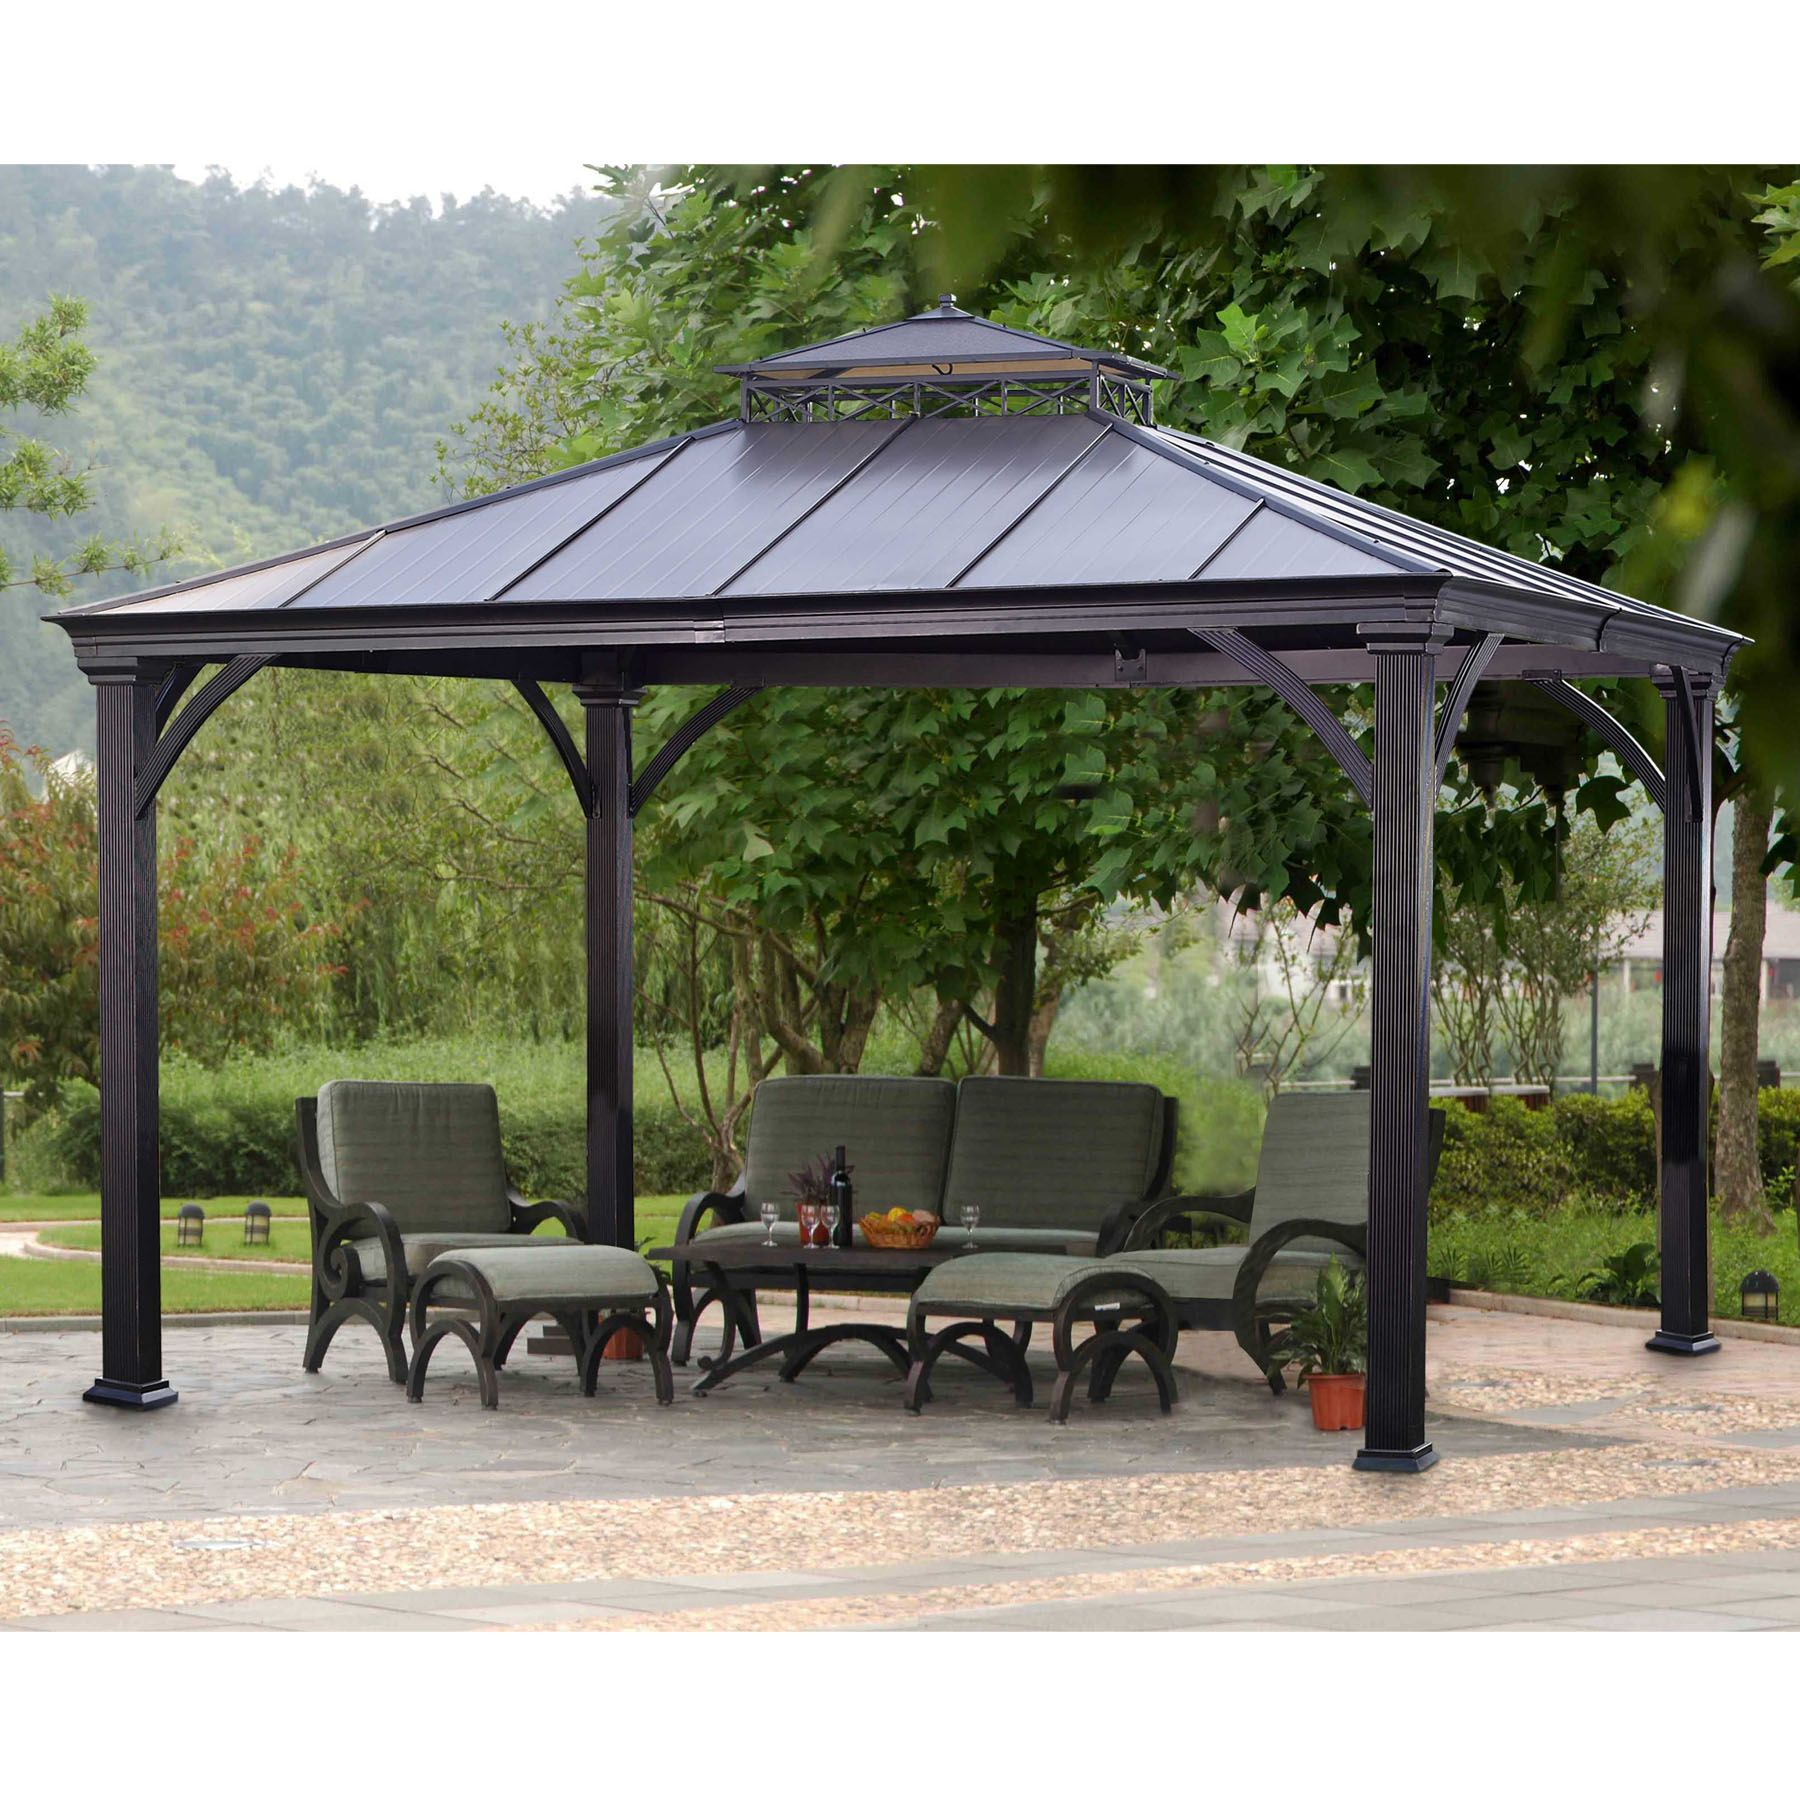 Sunjoy Deerfield Gazebo Outdoor Living Gazebos Canopies Pergolas Gazebos Sears I Need This For The Backyard Gazebo Backyard Gazebo Patio